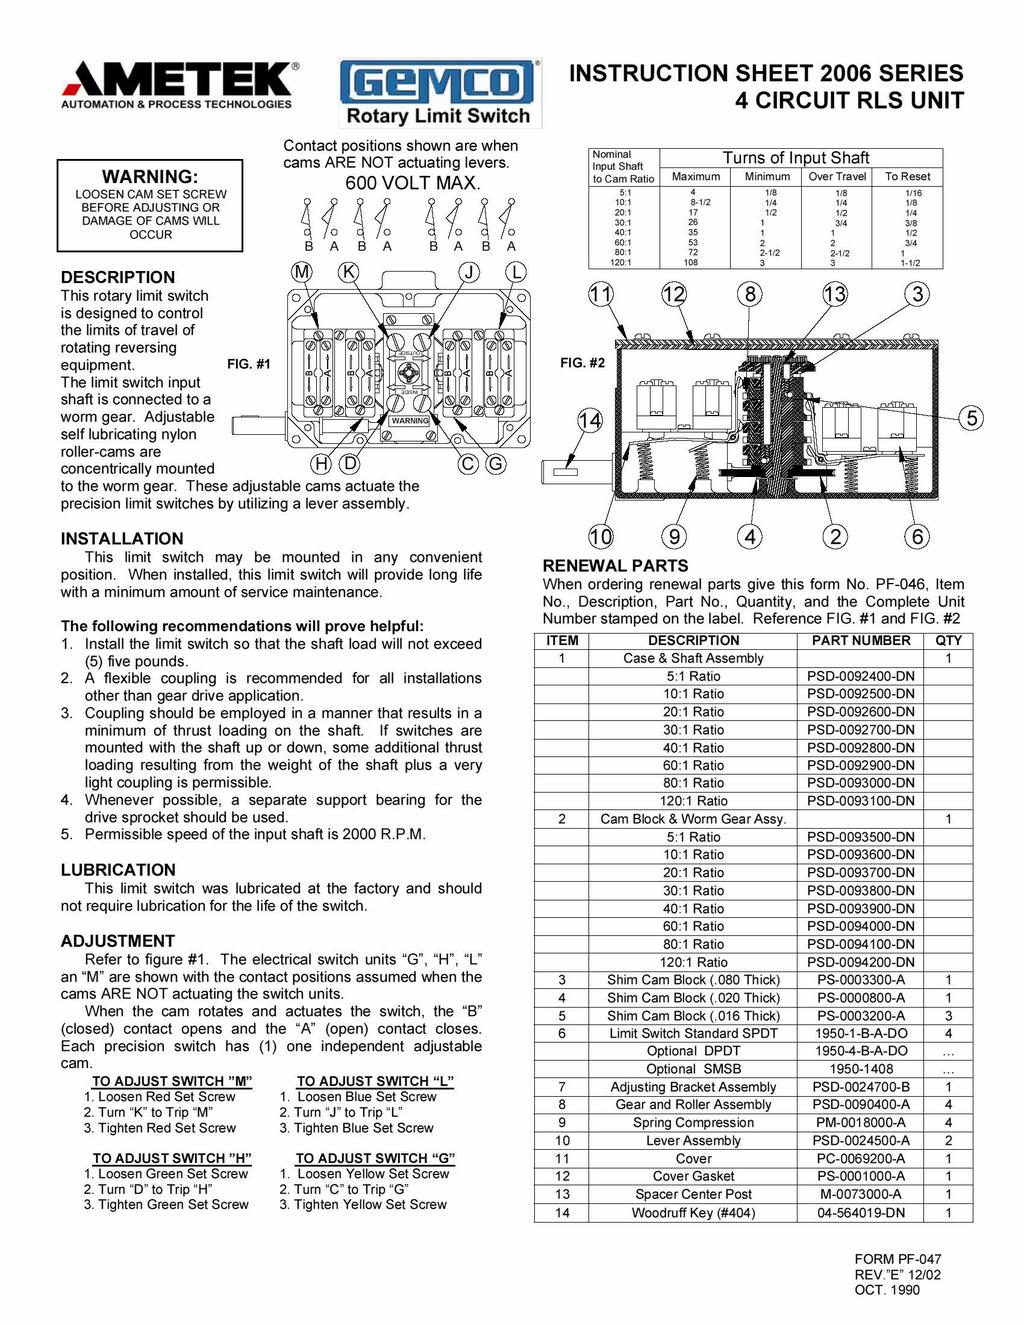 Ametek Gemco Limit Switch Wiring Diagram Control Switches To Furthermore On Forward Reverse Motor